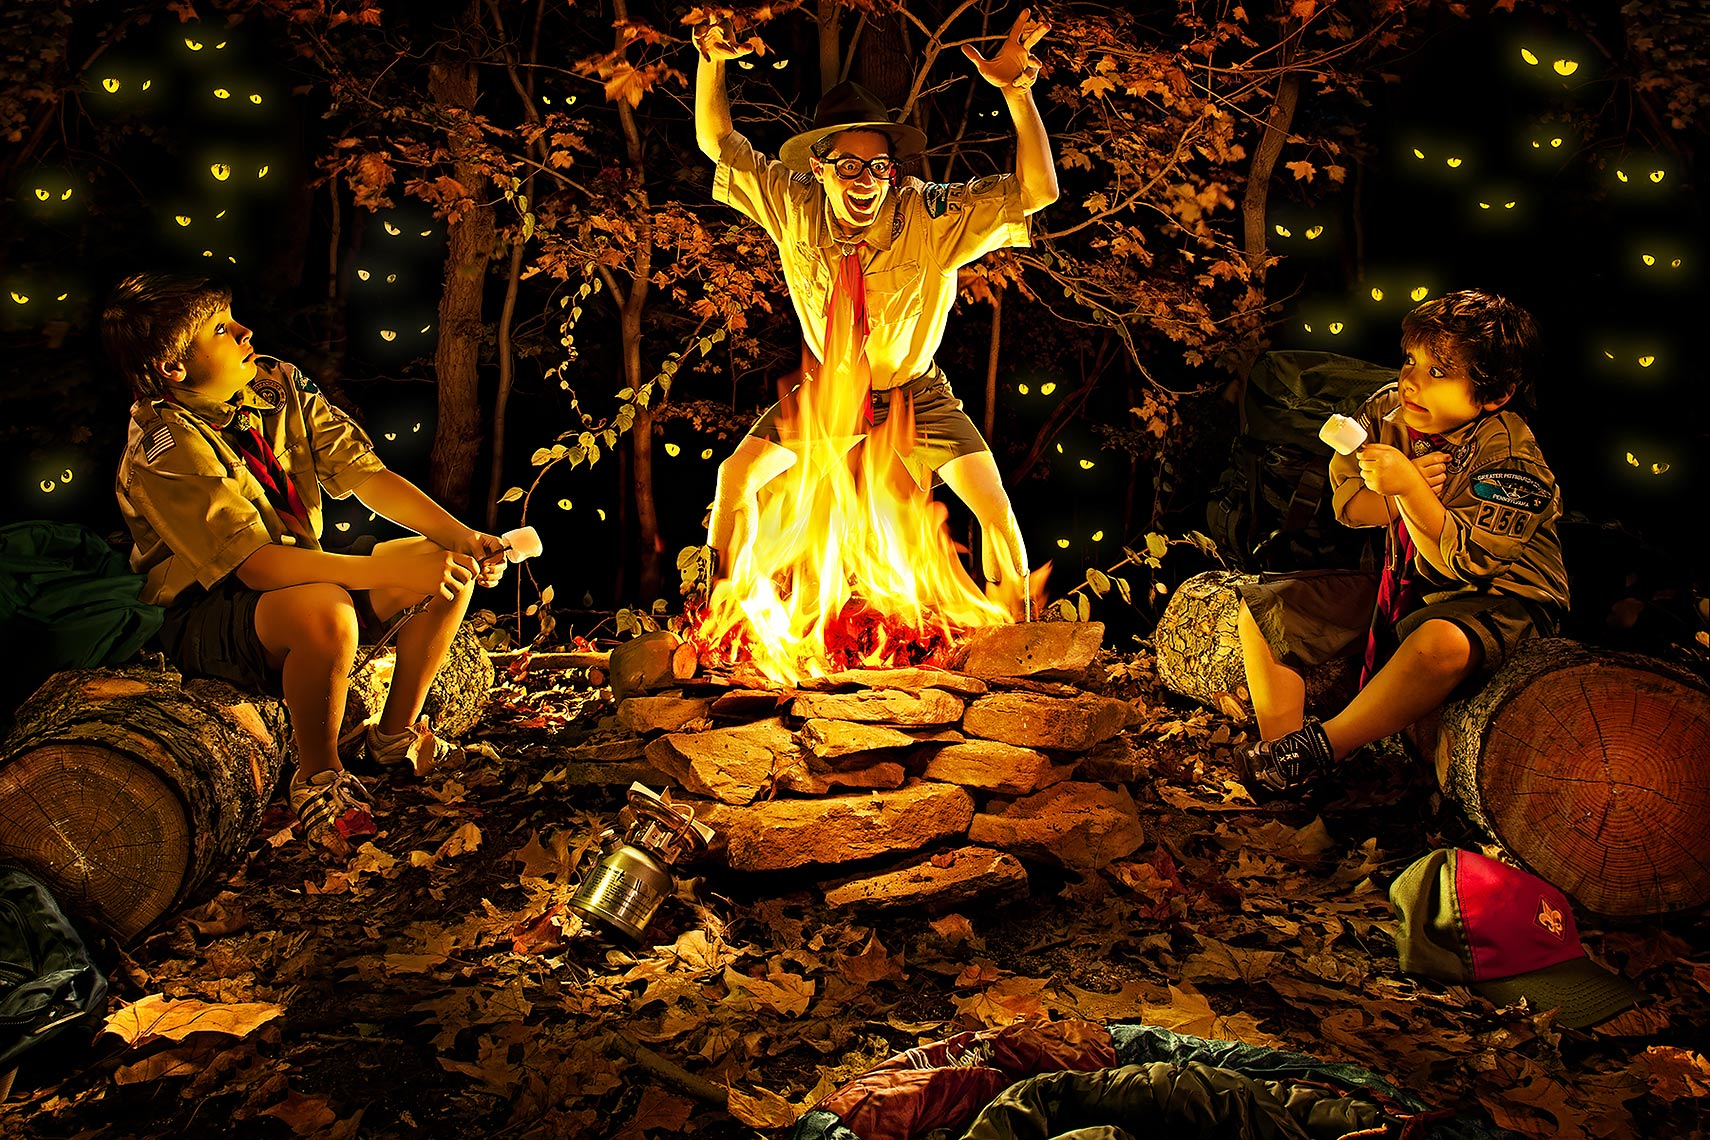 Illustration group of for. Campfire clipart storytelling